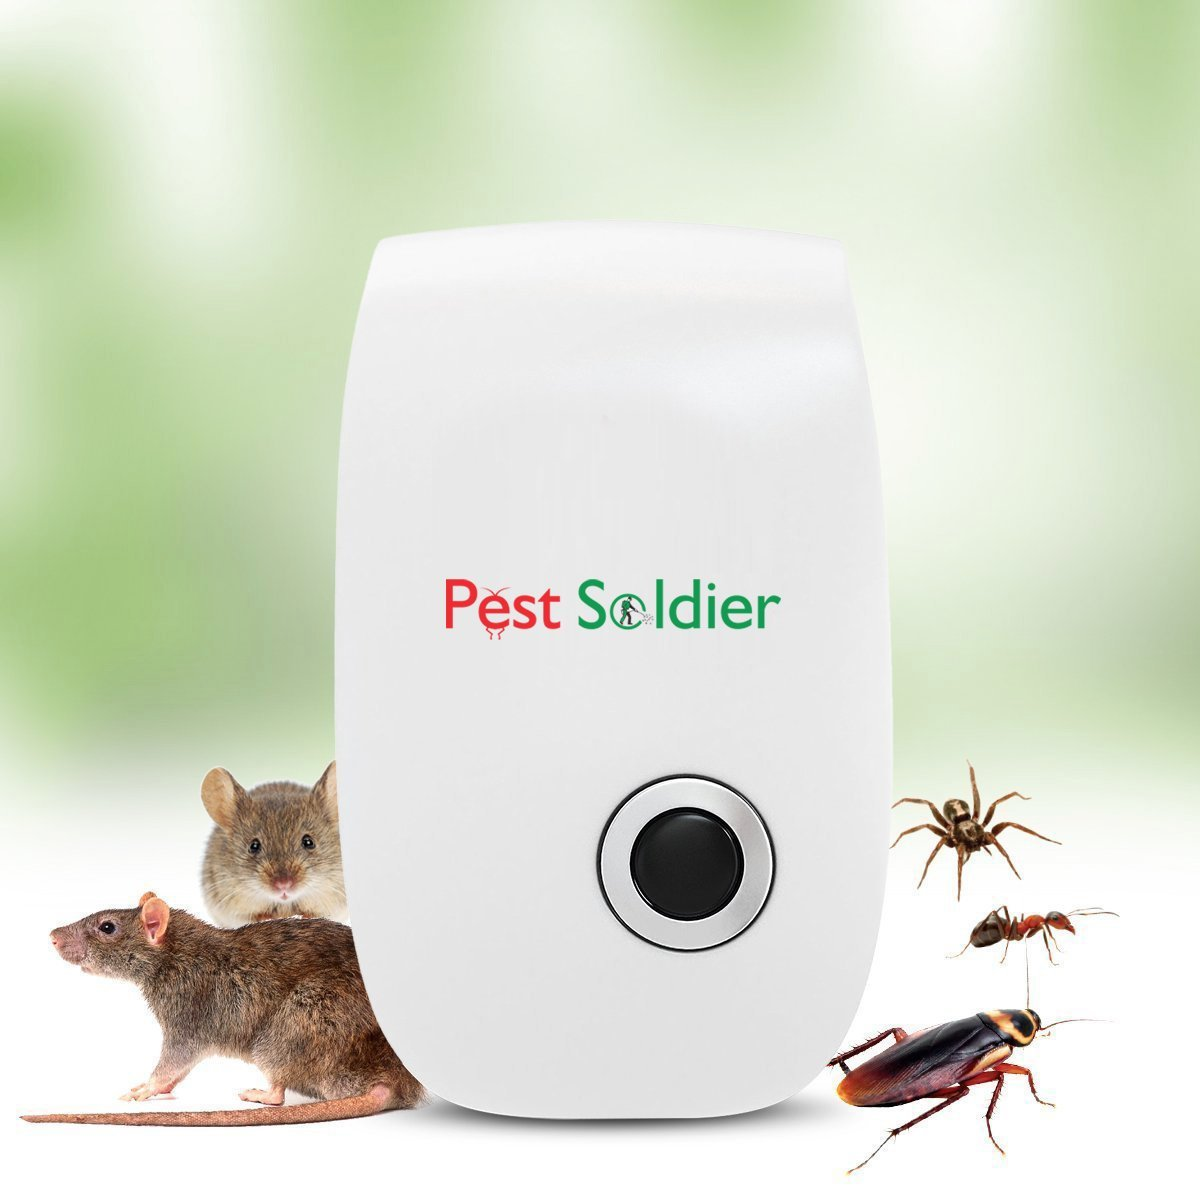 The Original Ultrasonic Pest Repellent Electronic Mosquito Circuitbest Repellentindoor Control Plug In Repeller For Insect Mice Roaches Bugs Fleas Mosquitoes